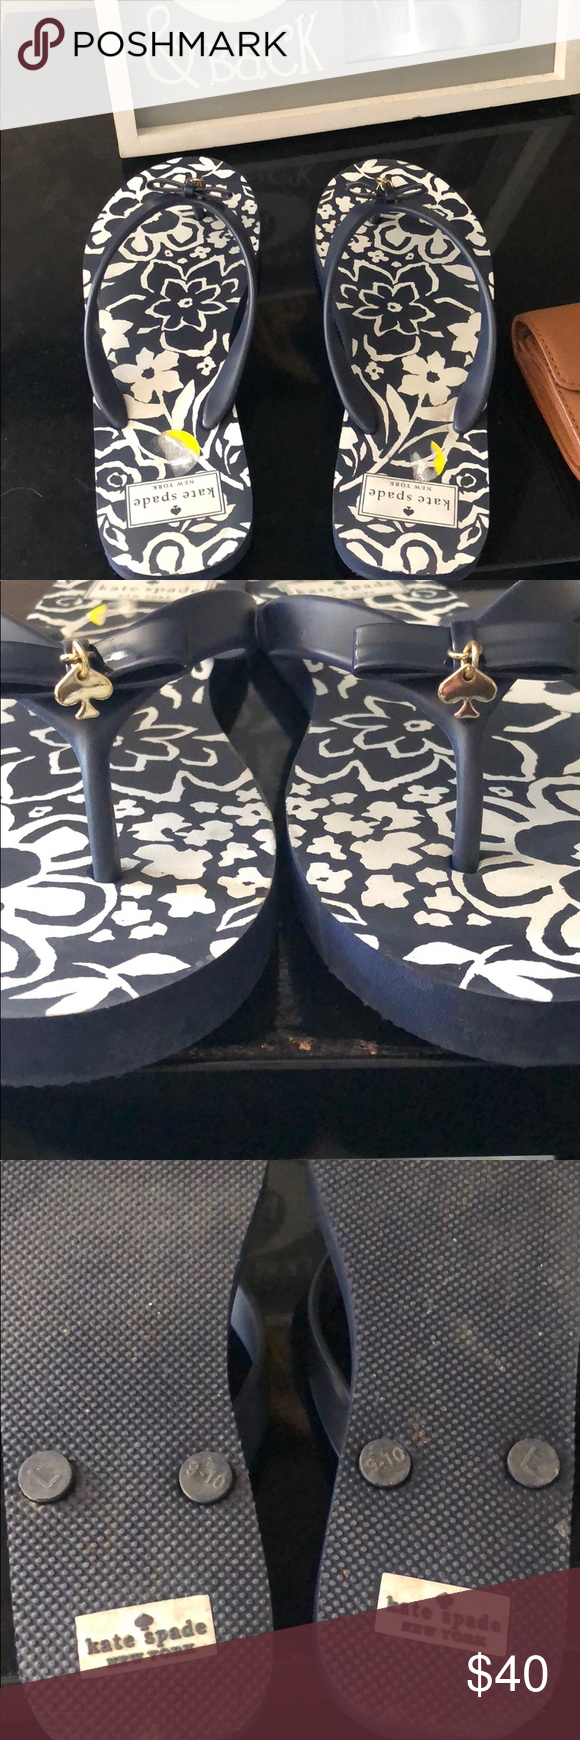 c90107b2022e Kate spade flip flops Literally wore them to 7 11 once for 10 minutes  they re super cute no signs of wear I ll take the rest of the sticker off I  just ...